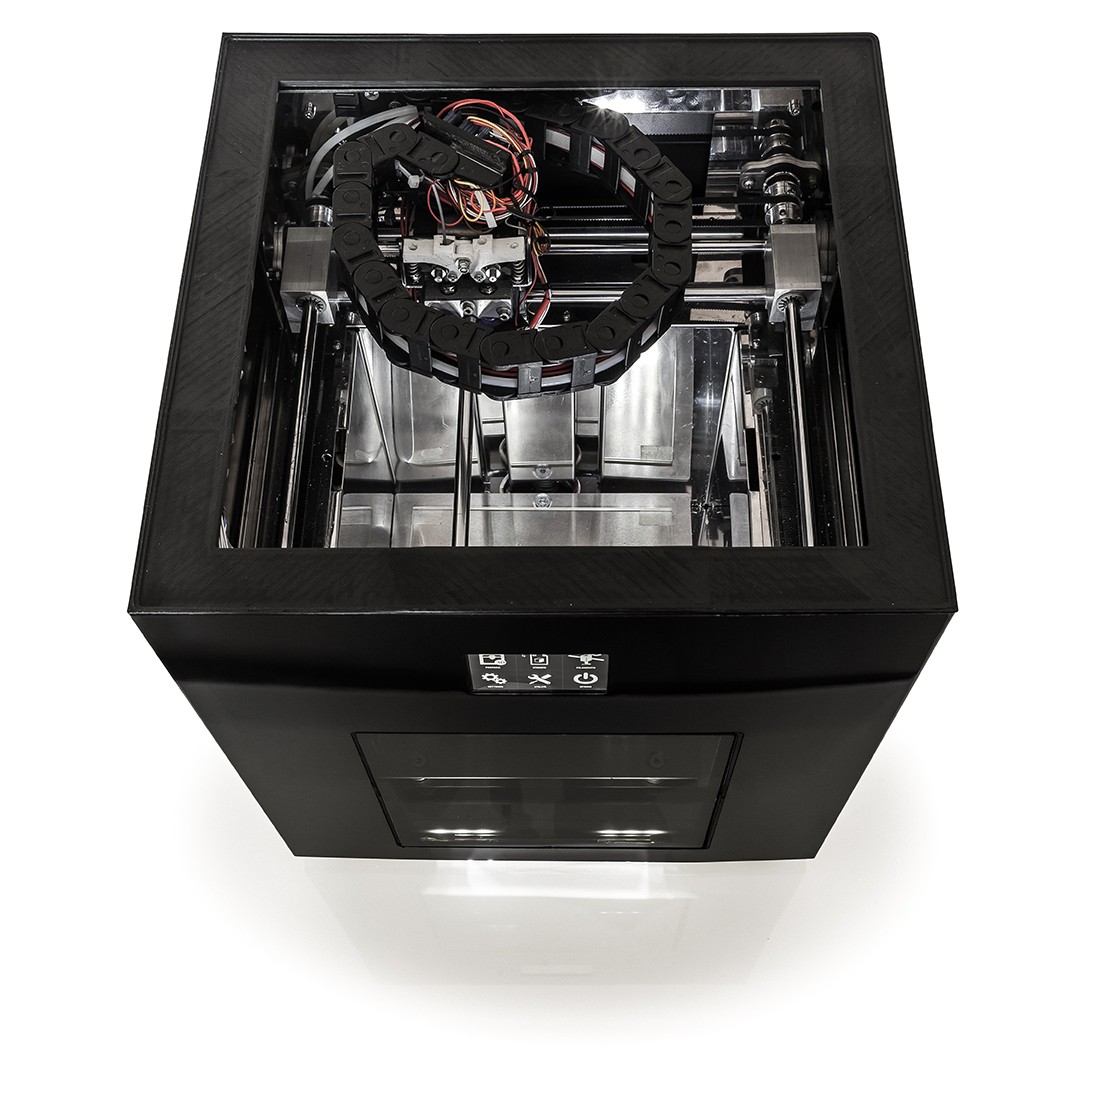 Tred Q_be black desktop 3D printer